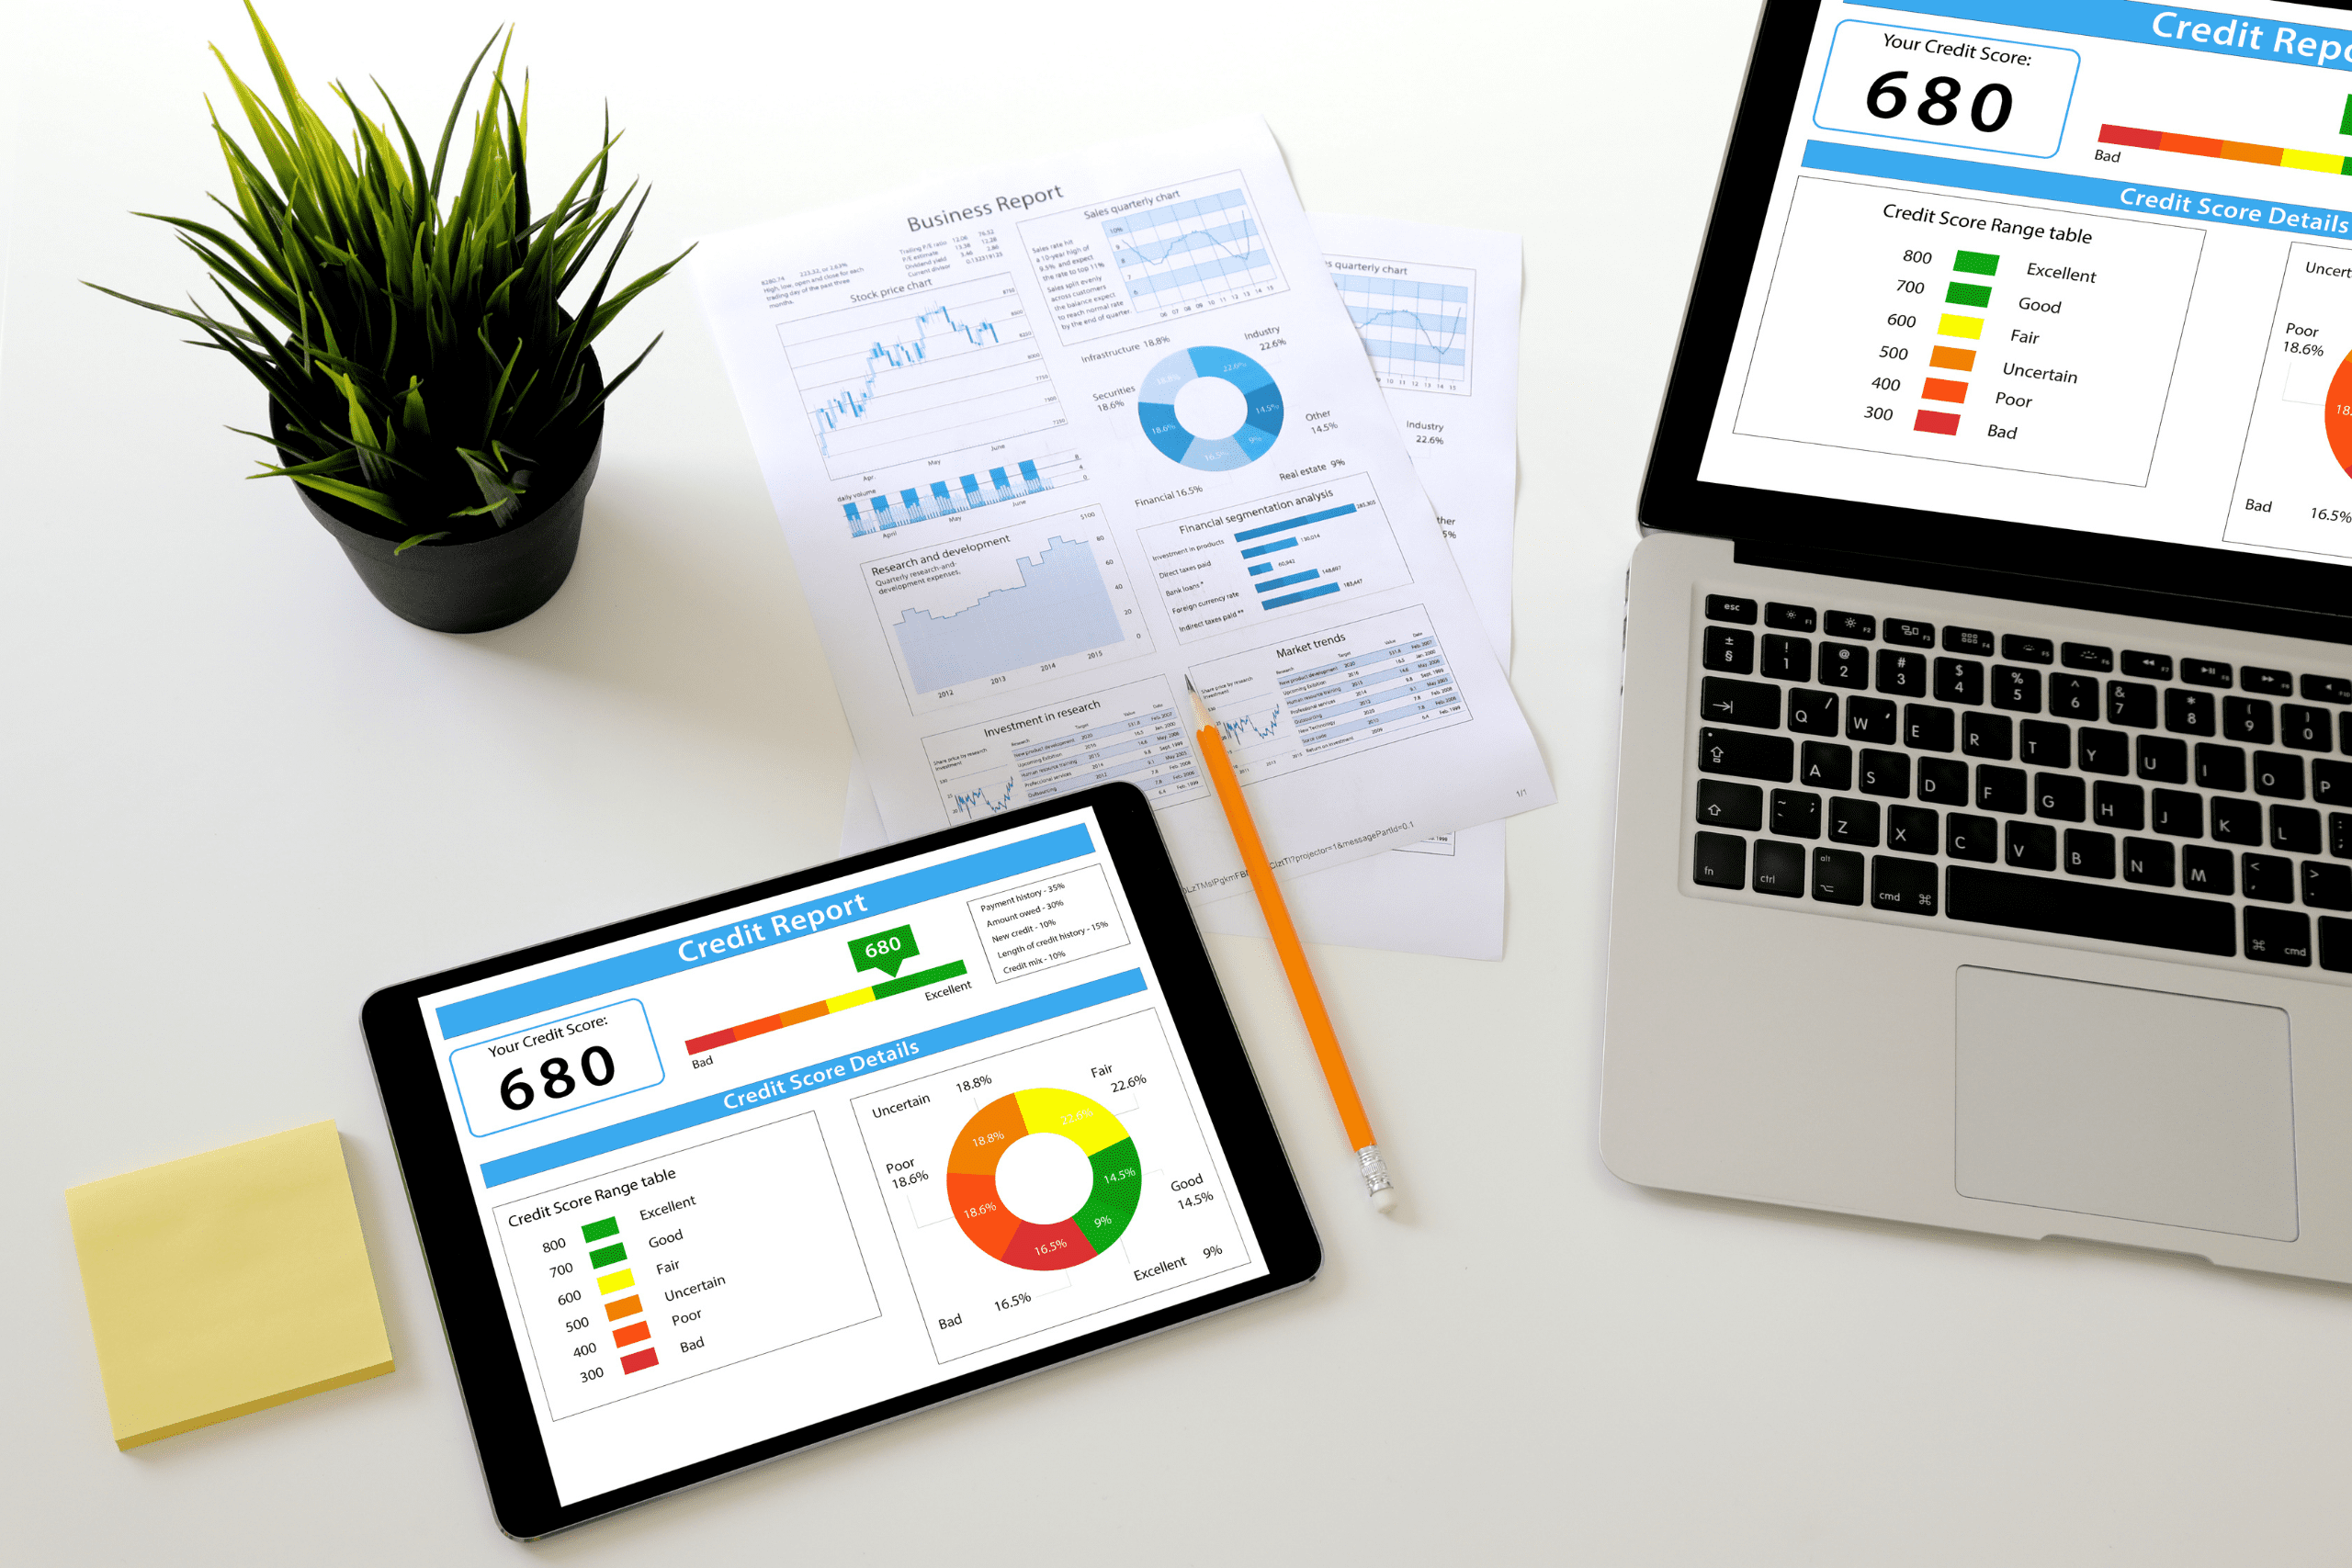 What's Your FICO Score and Why Does it Matter?